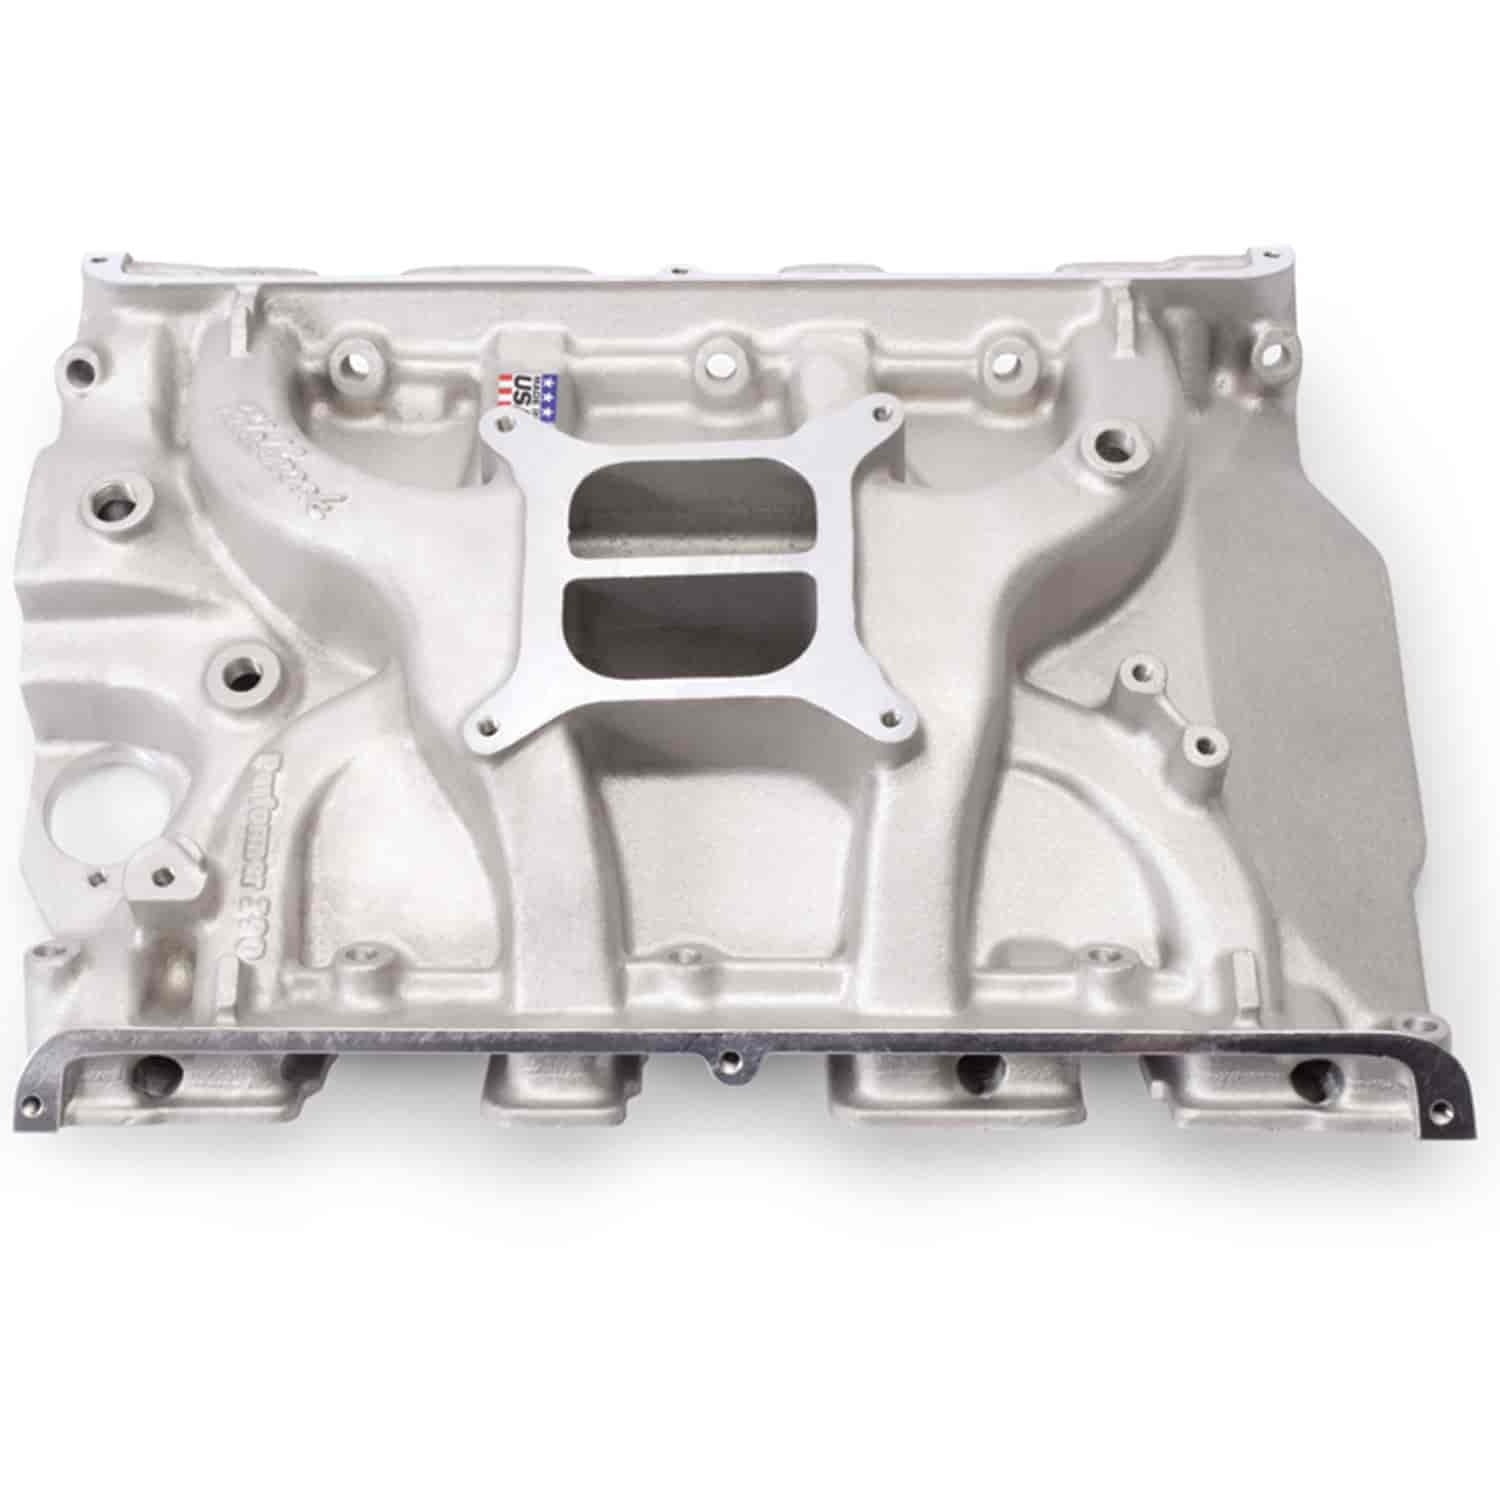 Edelbrock 2105 - Edelbrock Performer Manifolds for Ford